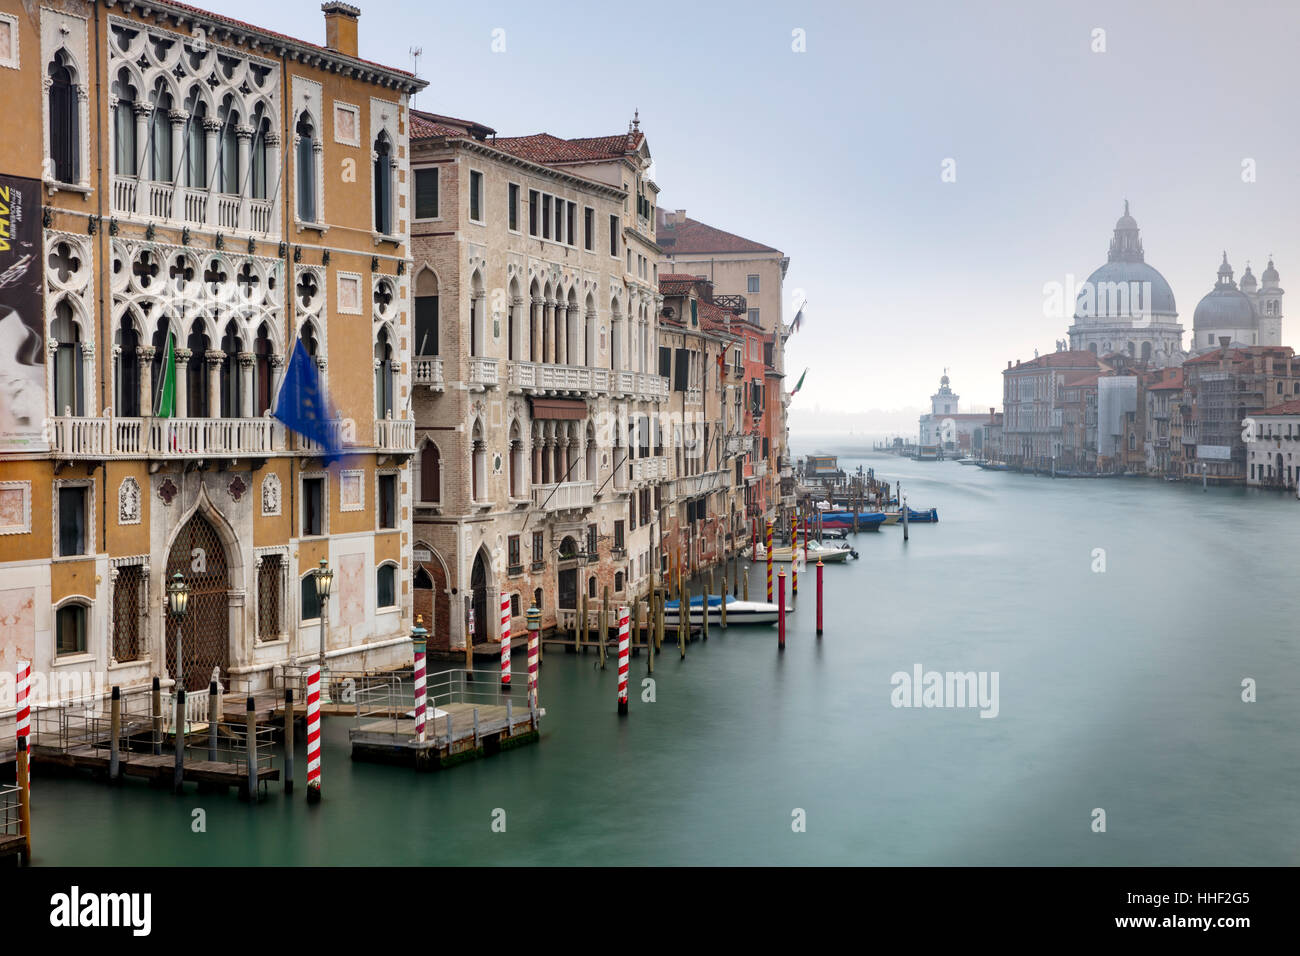 Misty dawn over the Grand Canal, Santa Maria della Salute and buildings of Venice, Veneto, Italy - Stock Image